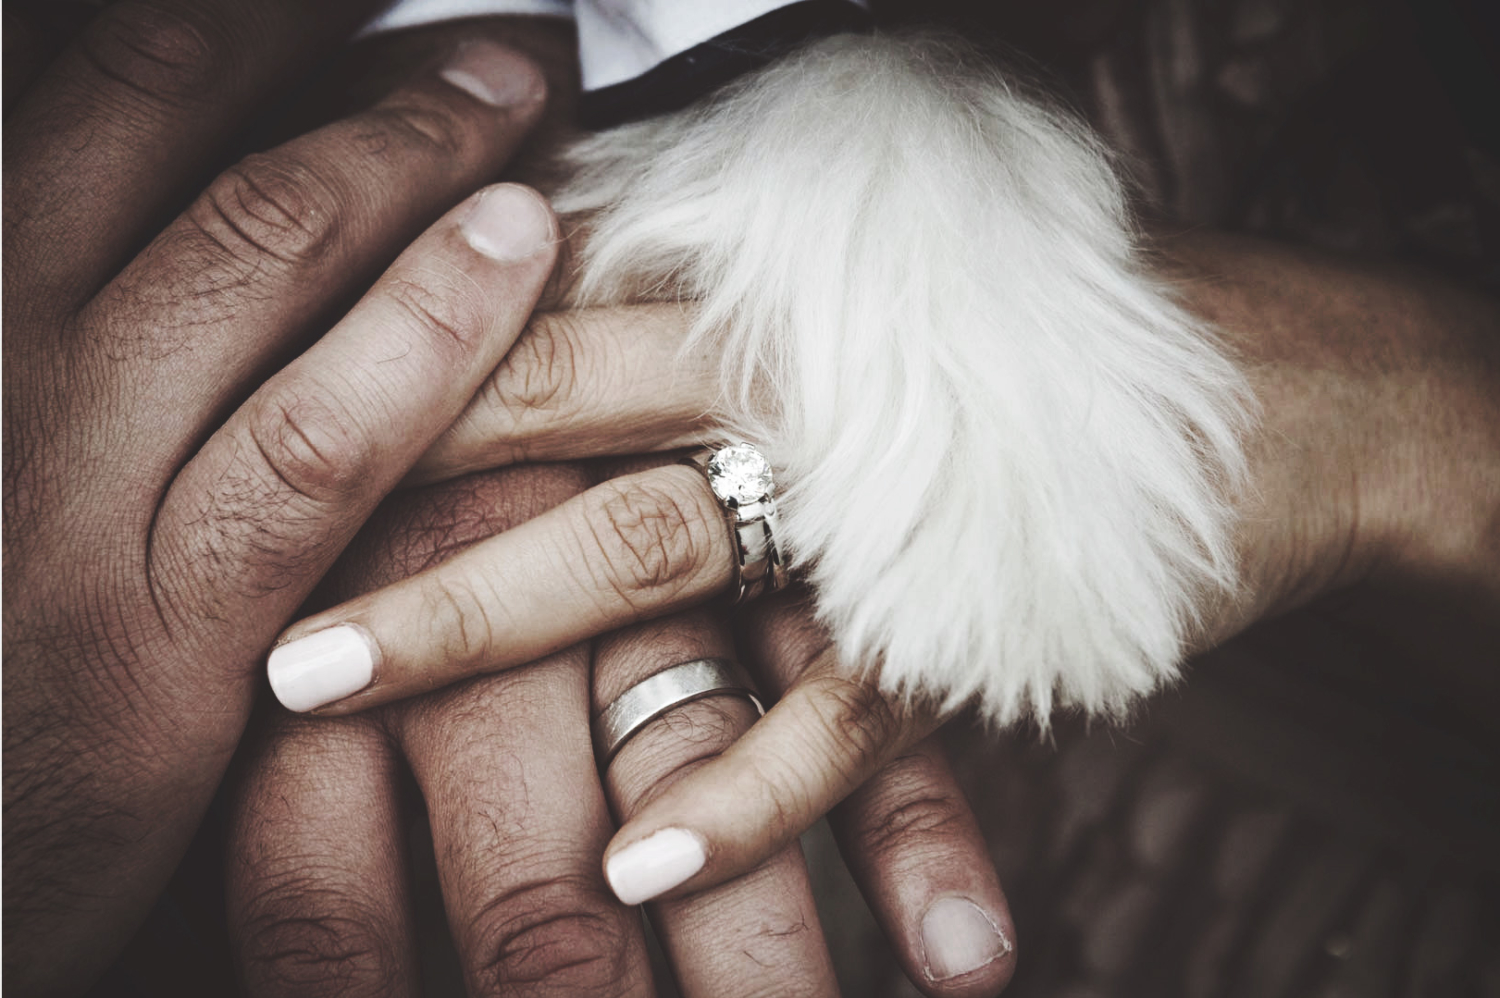 Photographie of hands wearing wedding rings and dog's paw